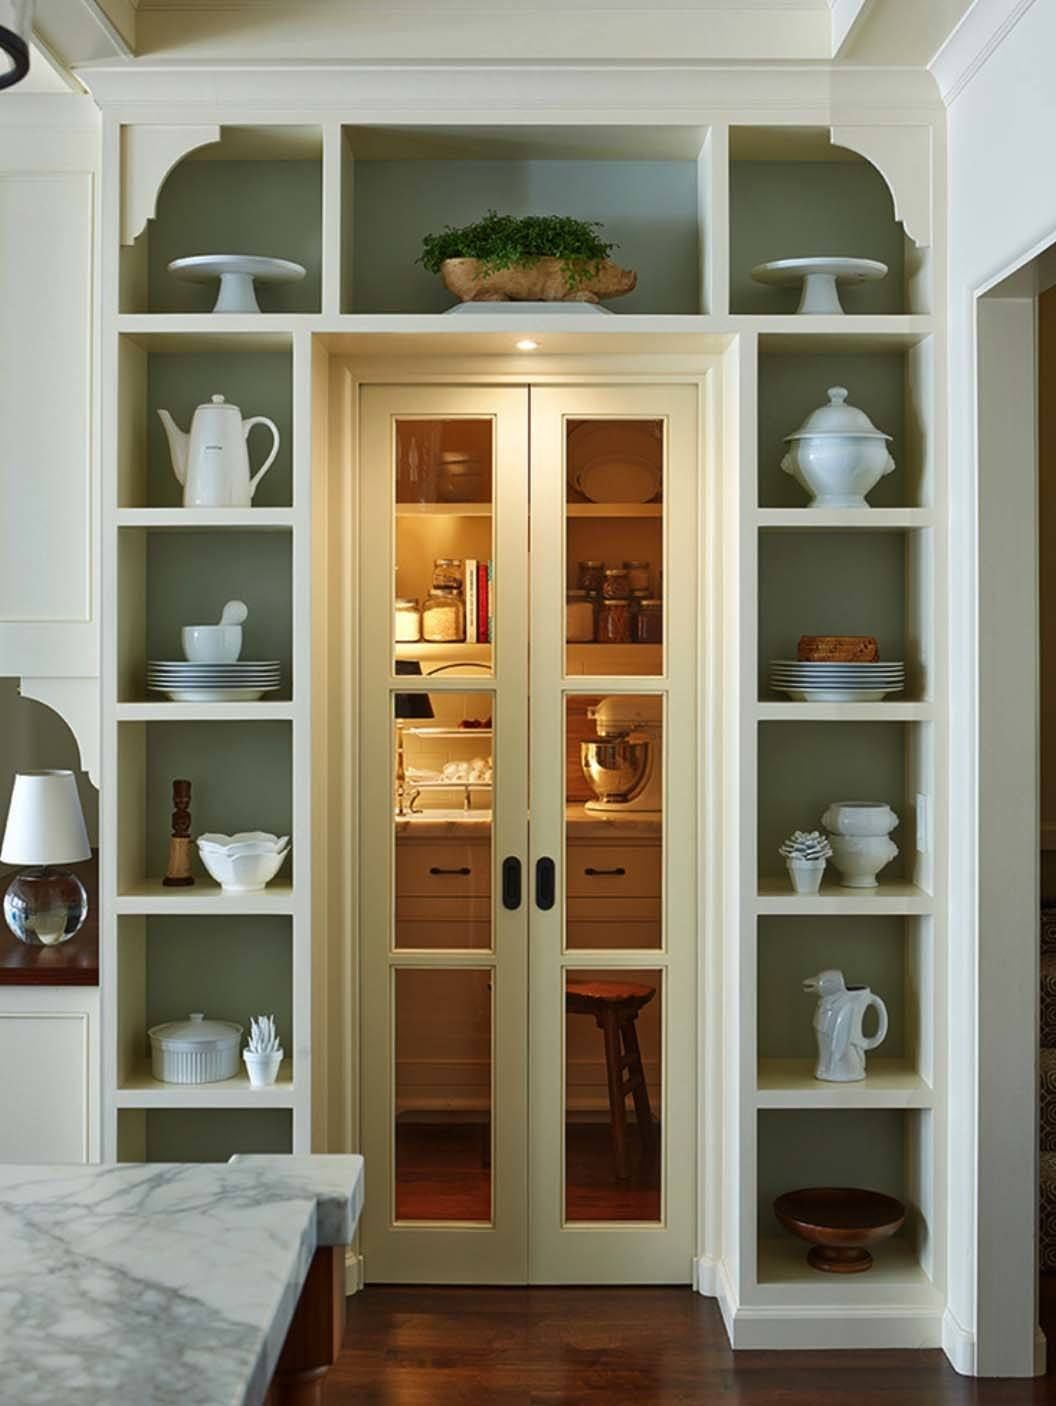 Clever ideas to help organize your kitchen pantry